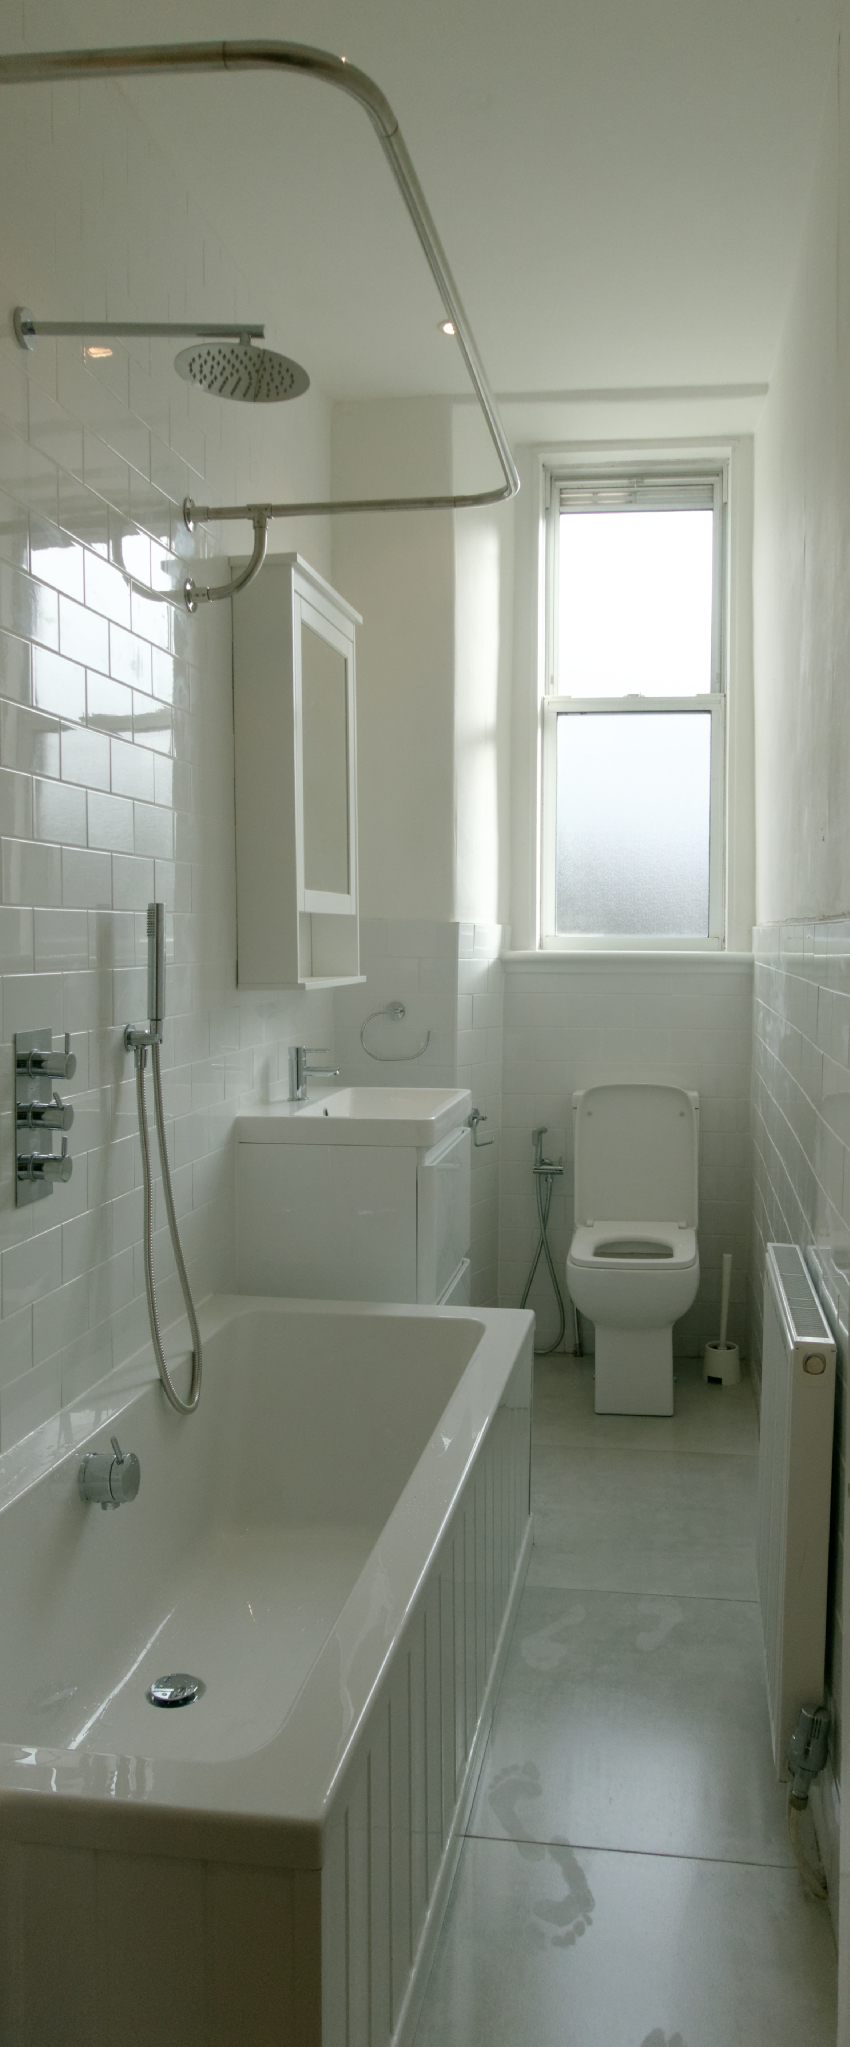 The much improved bathroom!